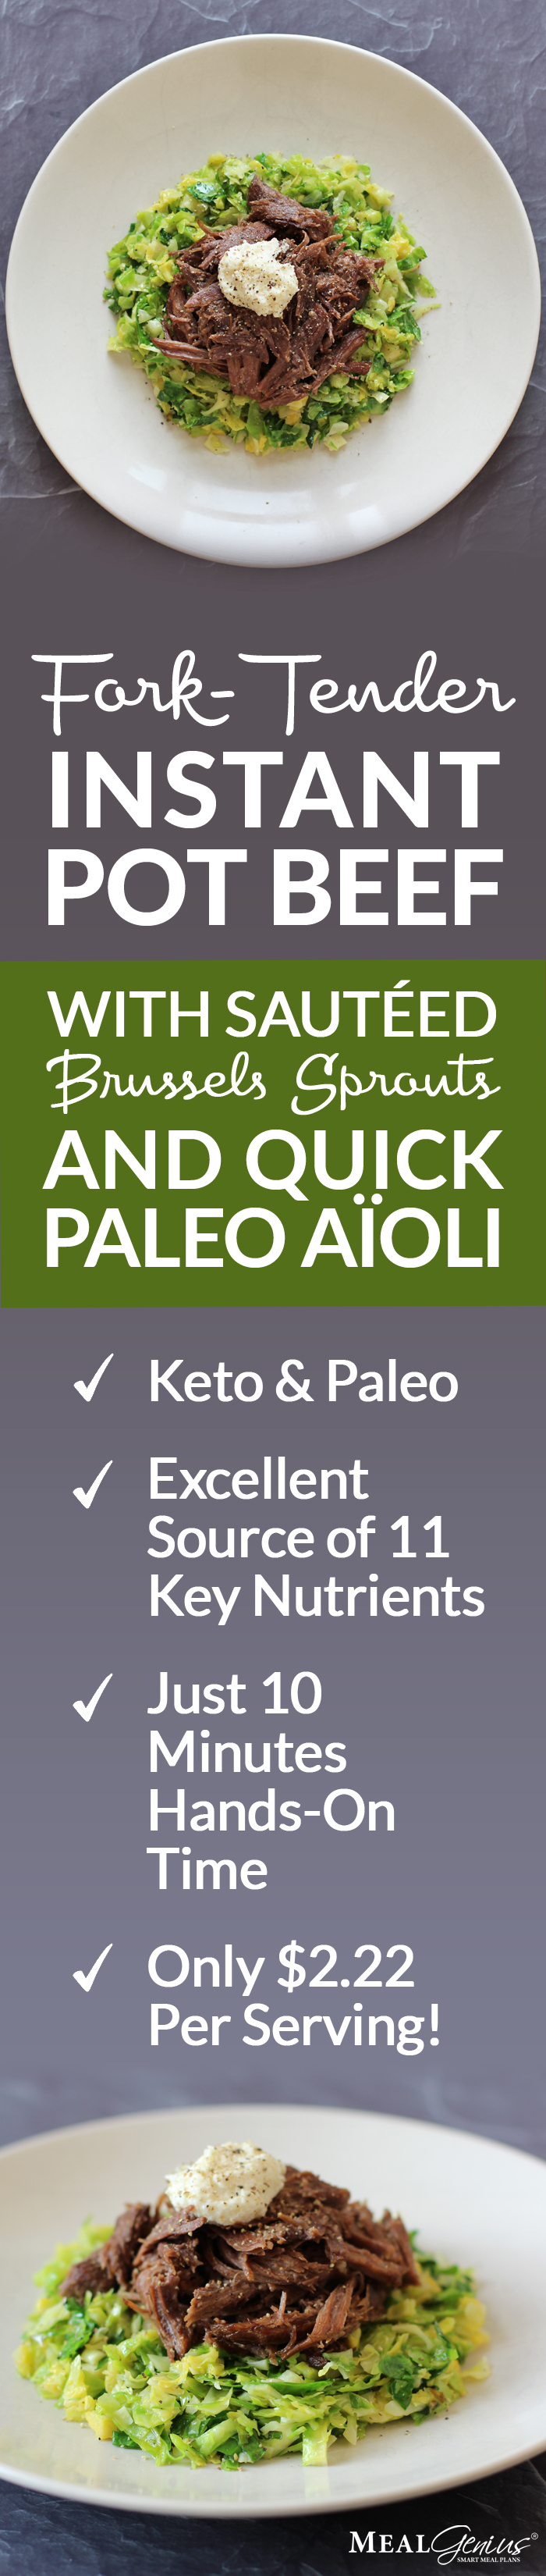 Instant Pot Beef Brussels Sprouts & Paleo Aioli - Meal Genius